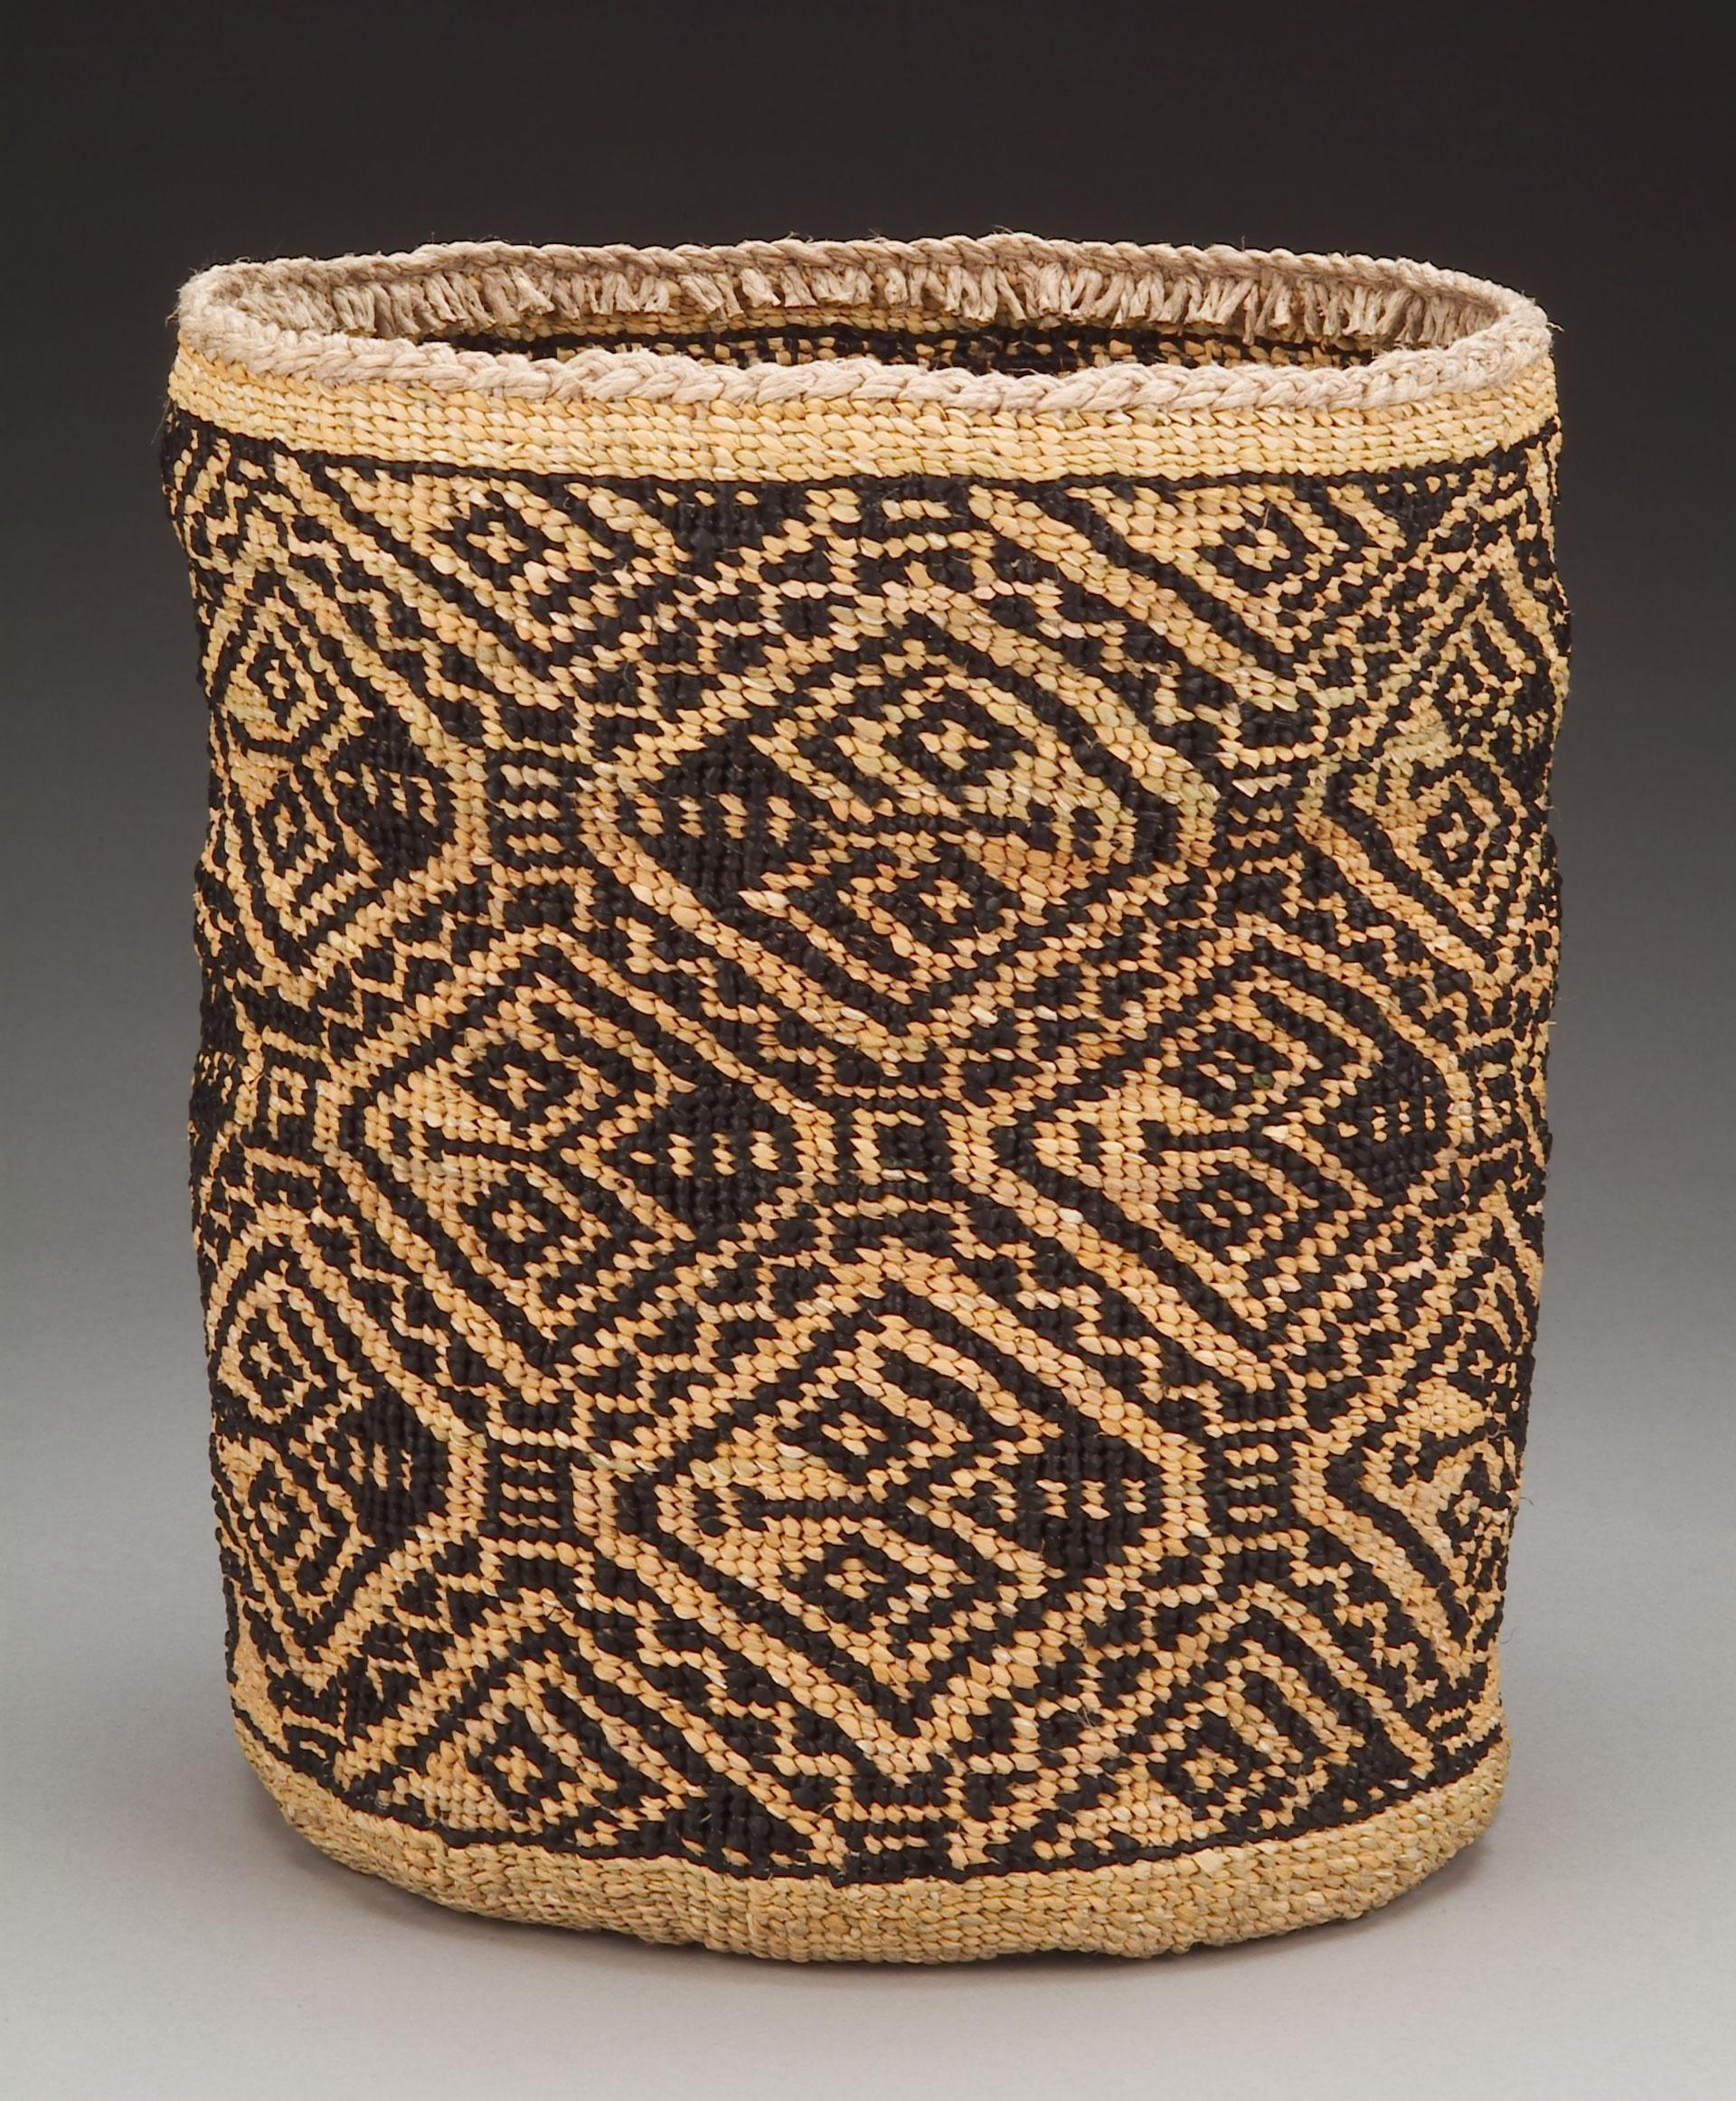 PAT COURTNEY GOLD (WASCO/TLINGIT), HONOR THE WASCO WEAVER OF THE 1805 BASKET COLLECTED BY LEWIS AND CLARK, 2003